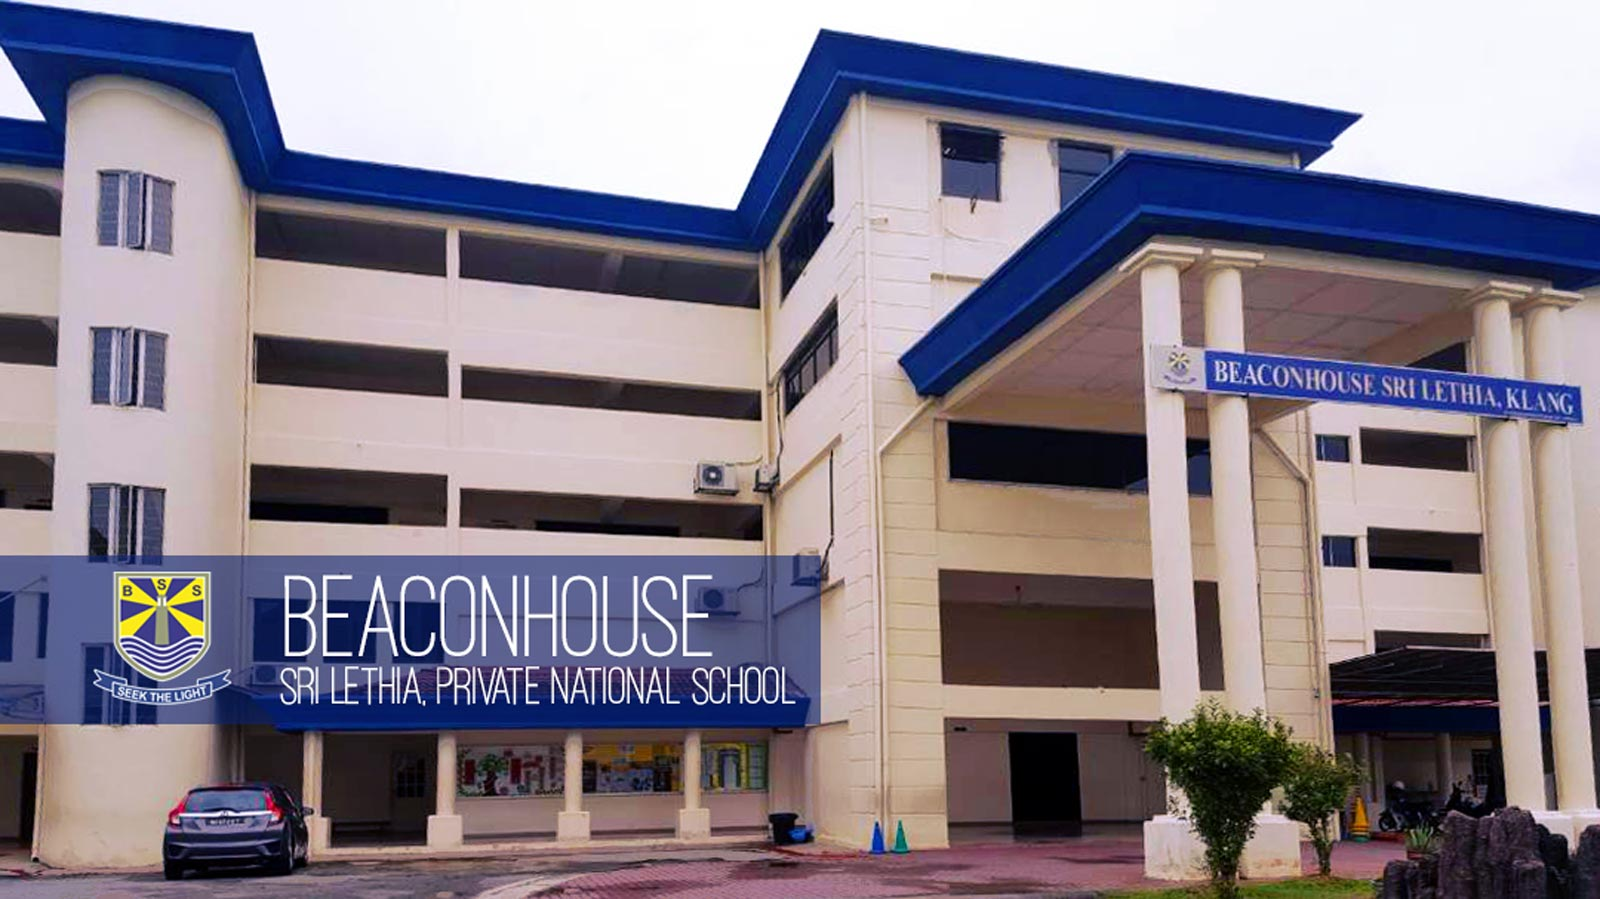 Beaconhouse-sri-lethia